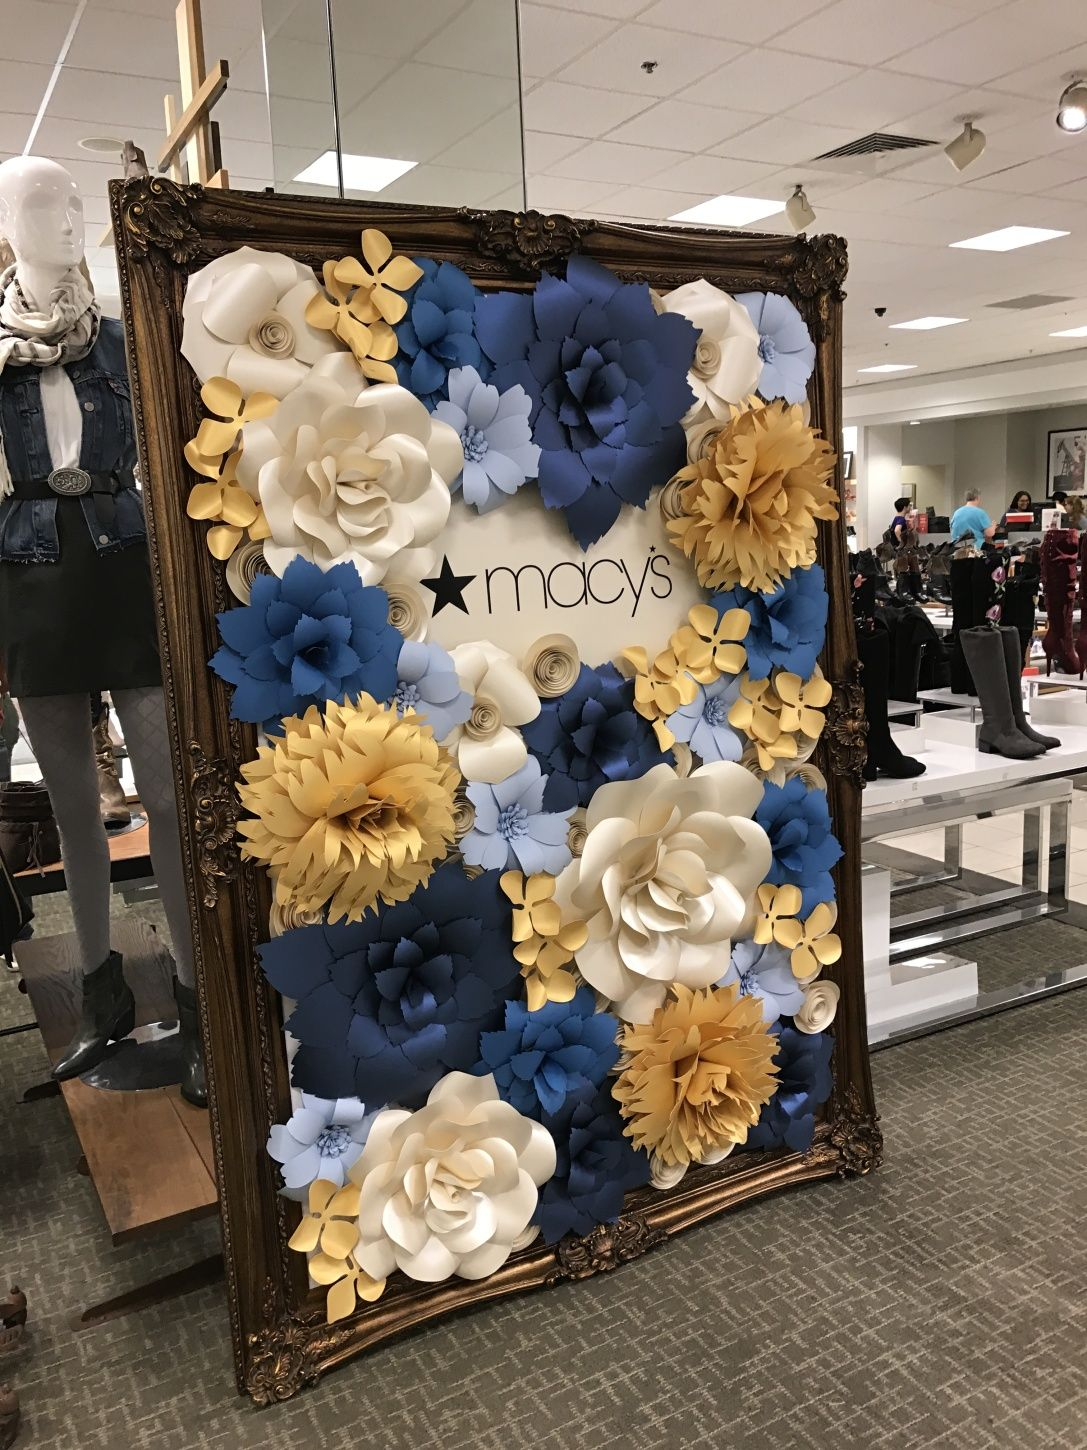 Paper Flower Wall Rental Paper Flower Wall Rentals And Paper Flower Arch Rental For Weddings Br Flower Wall Rental Paper Flower Wall Paper Flower Centerpieces